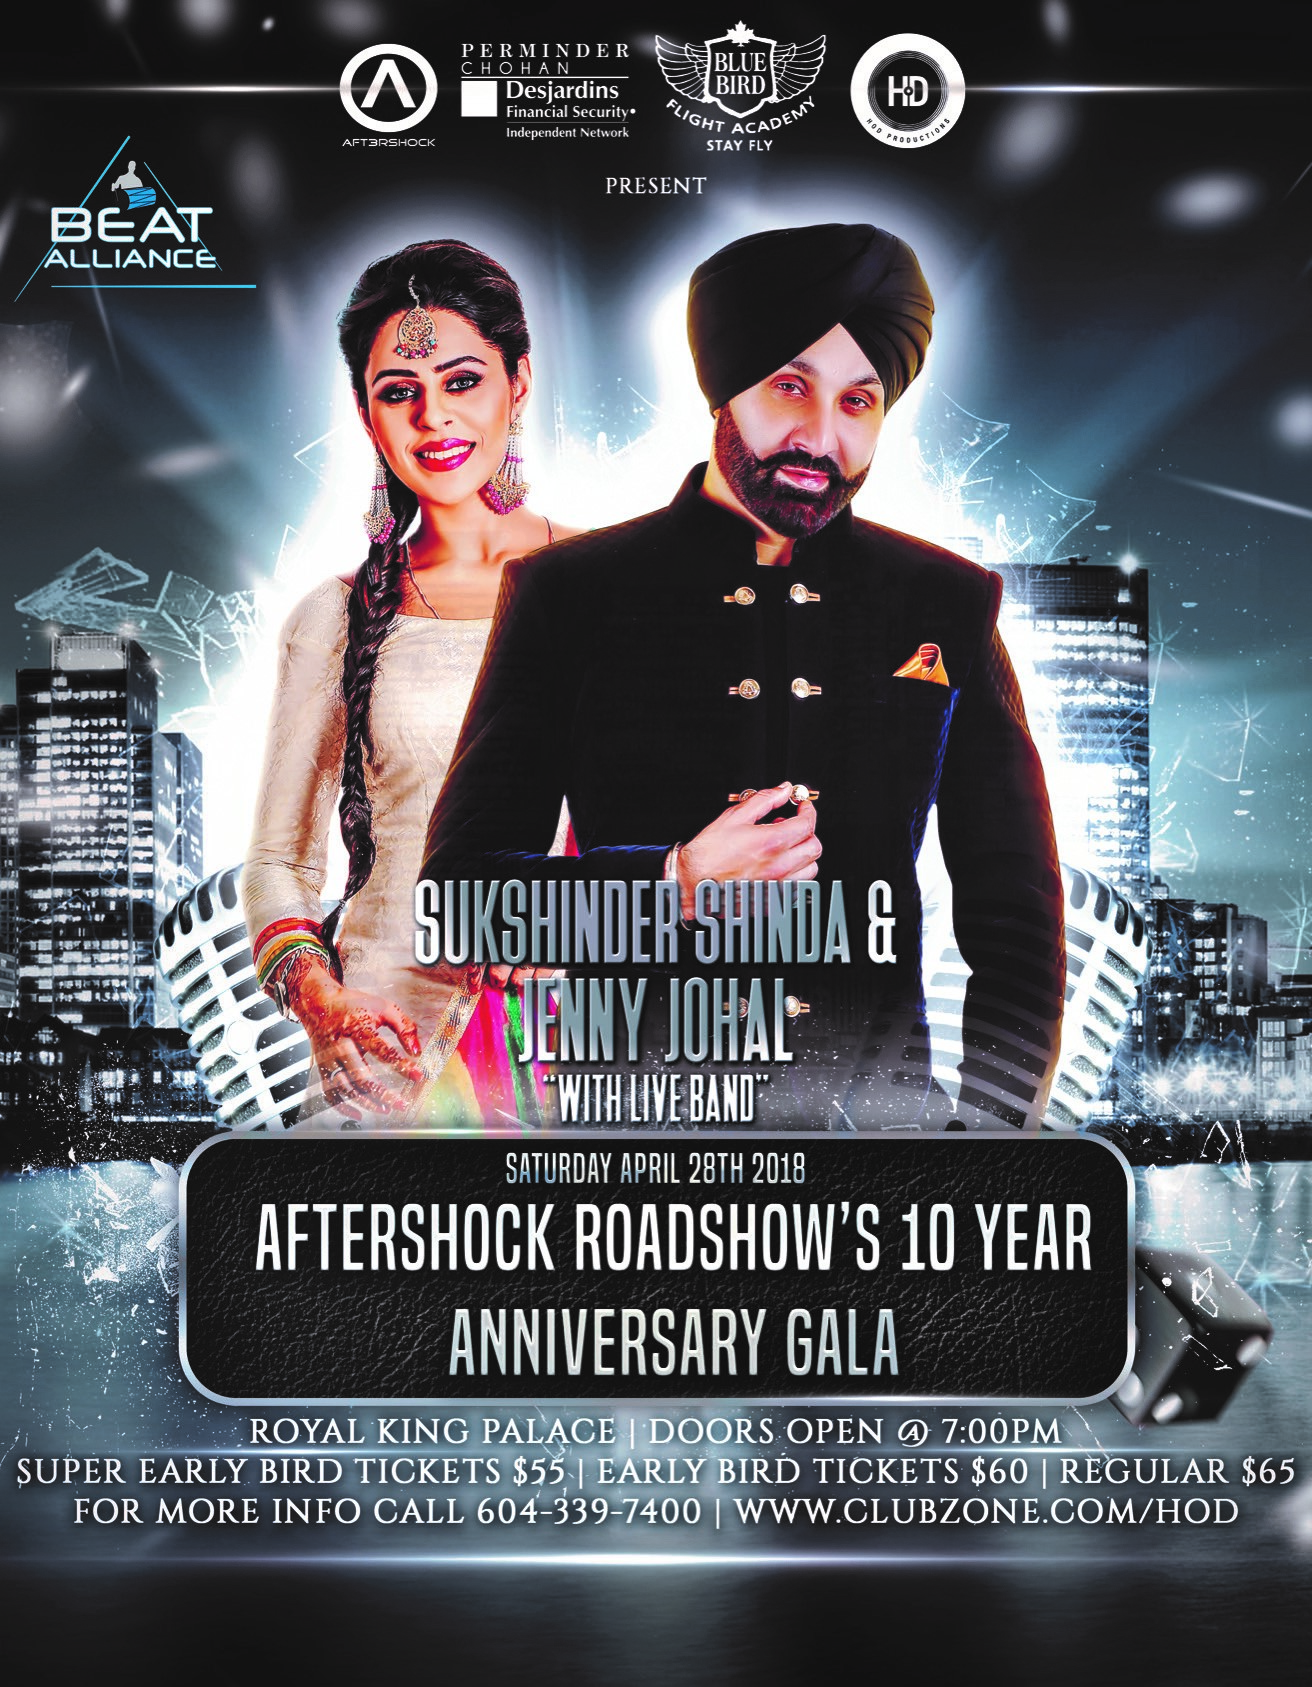 Aftershock Roadshow's 10 Year Anniversary Gala